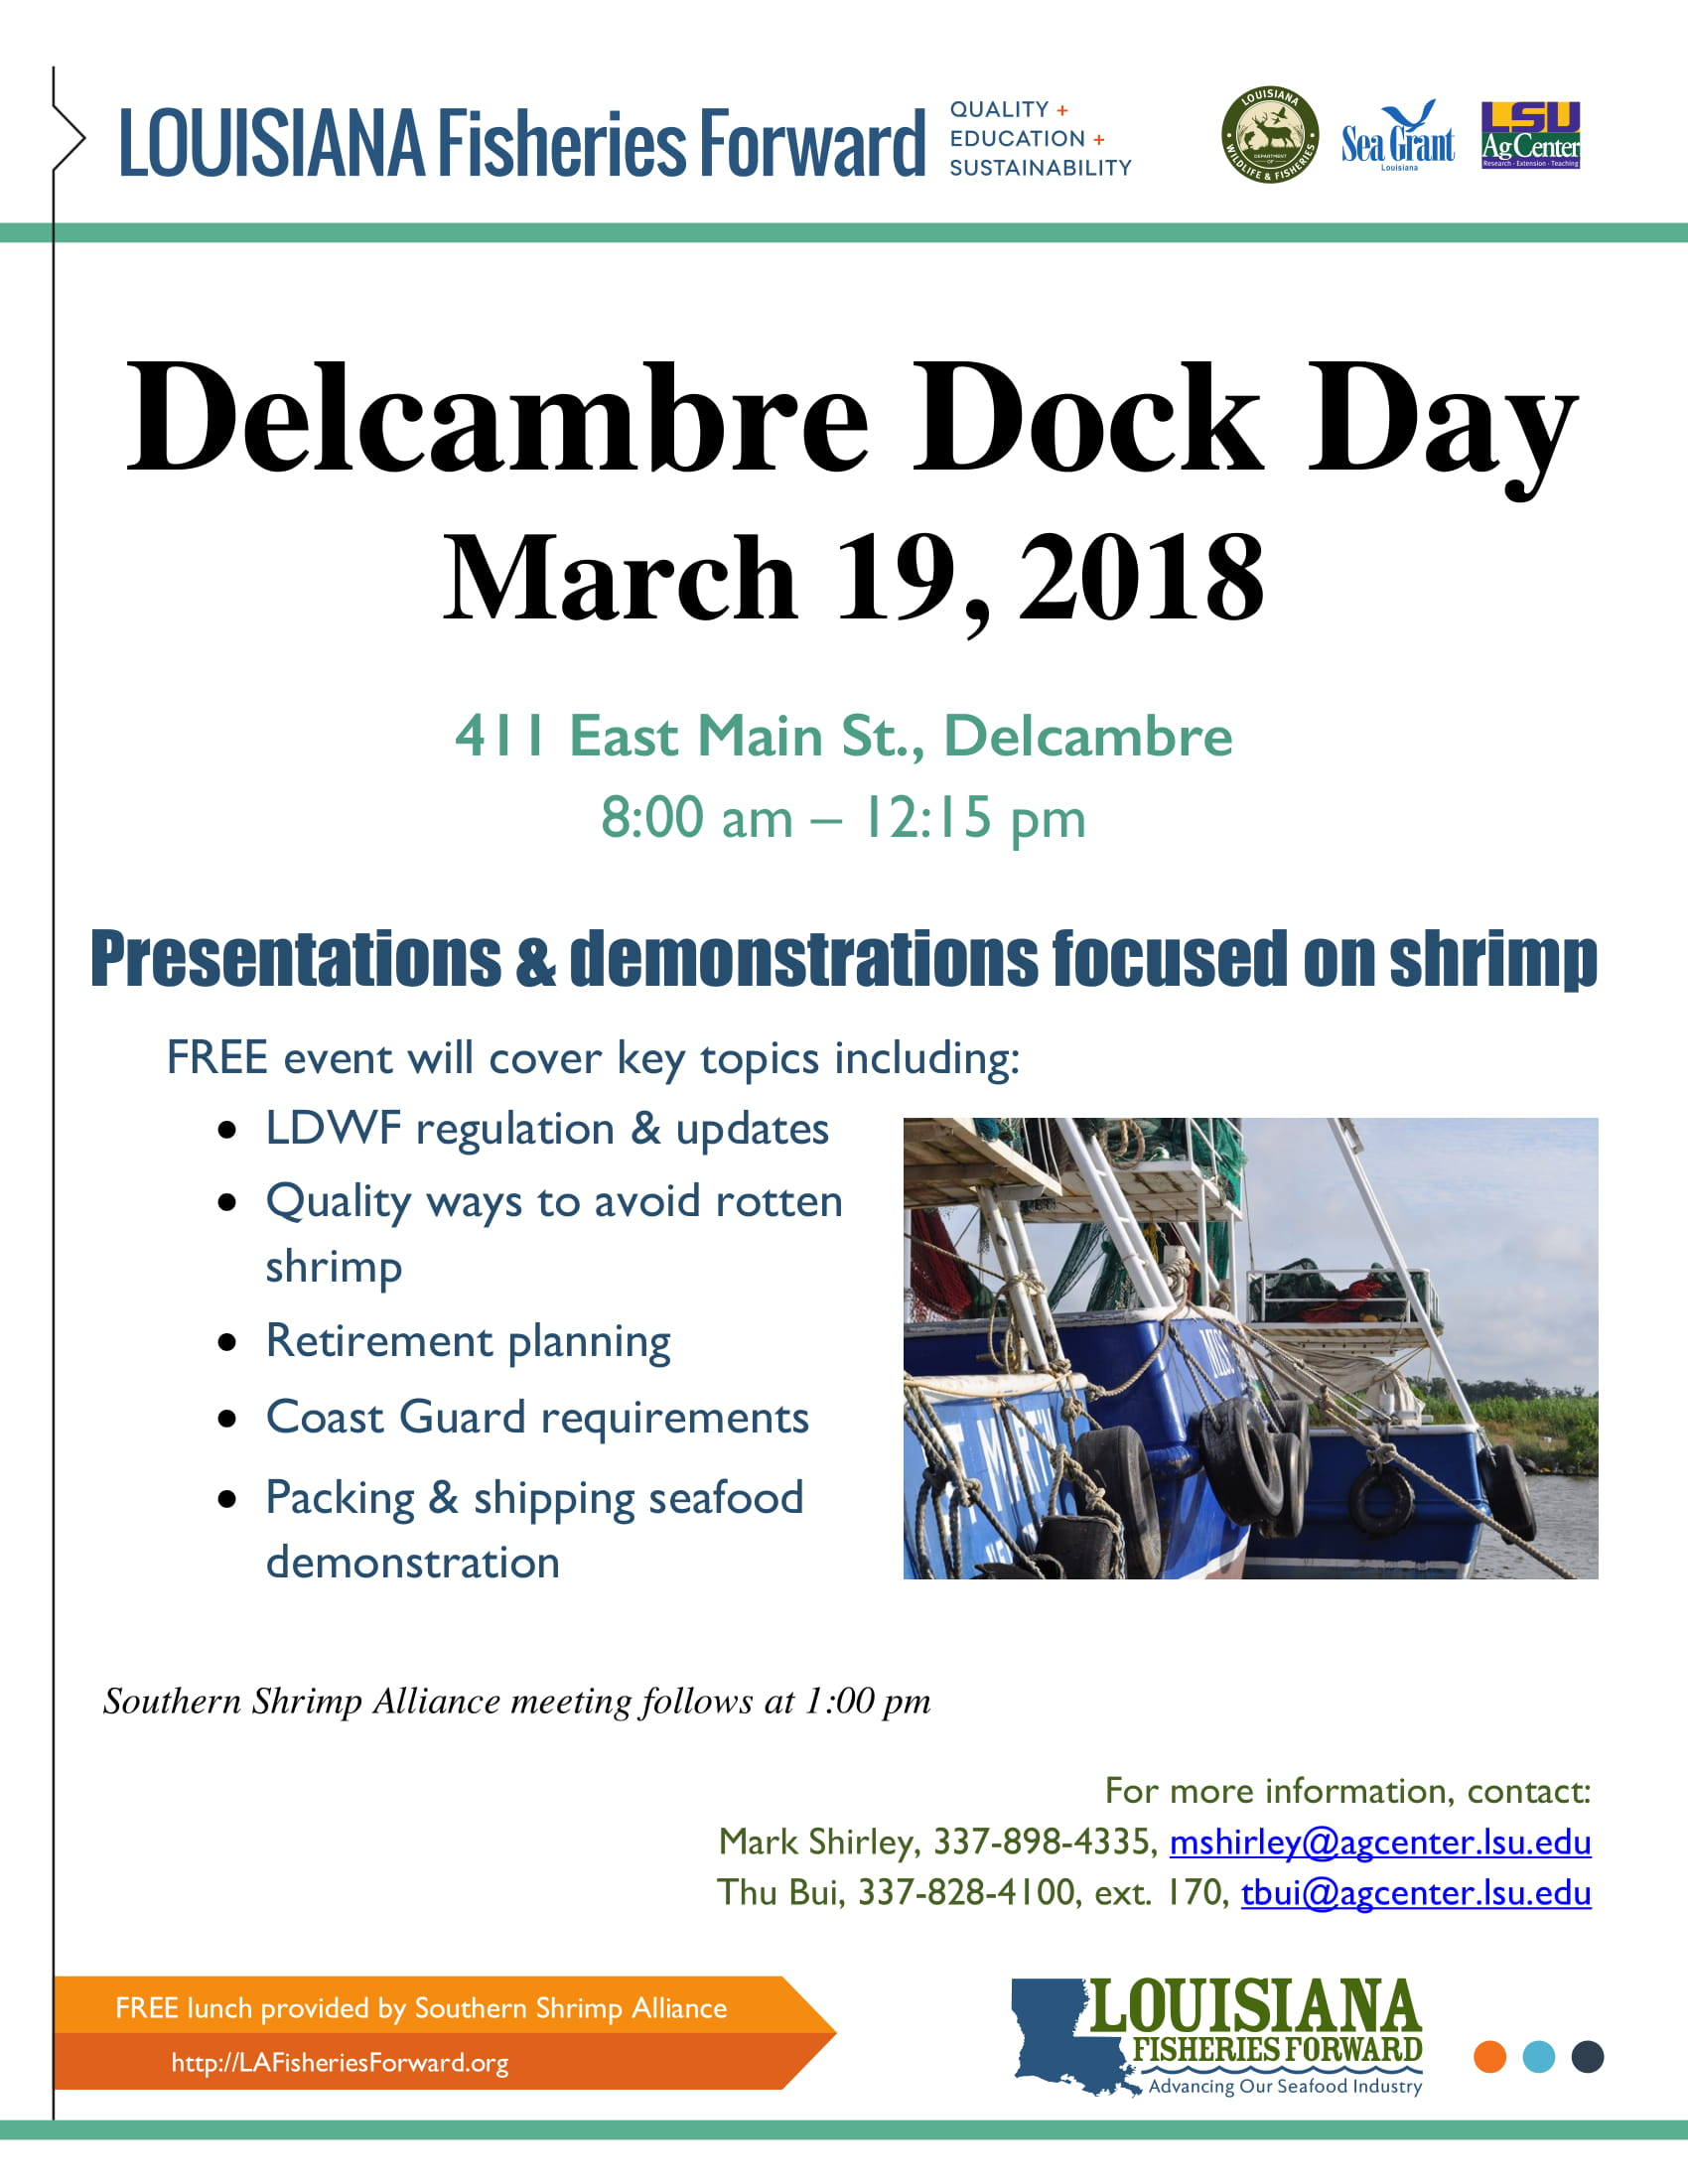 Delcambre Dock Day is March 19th - Southern Shrimp Alliance